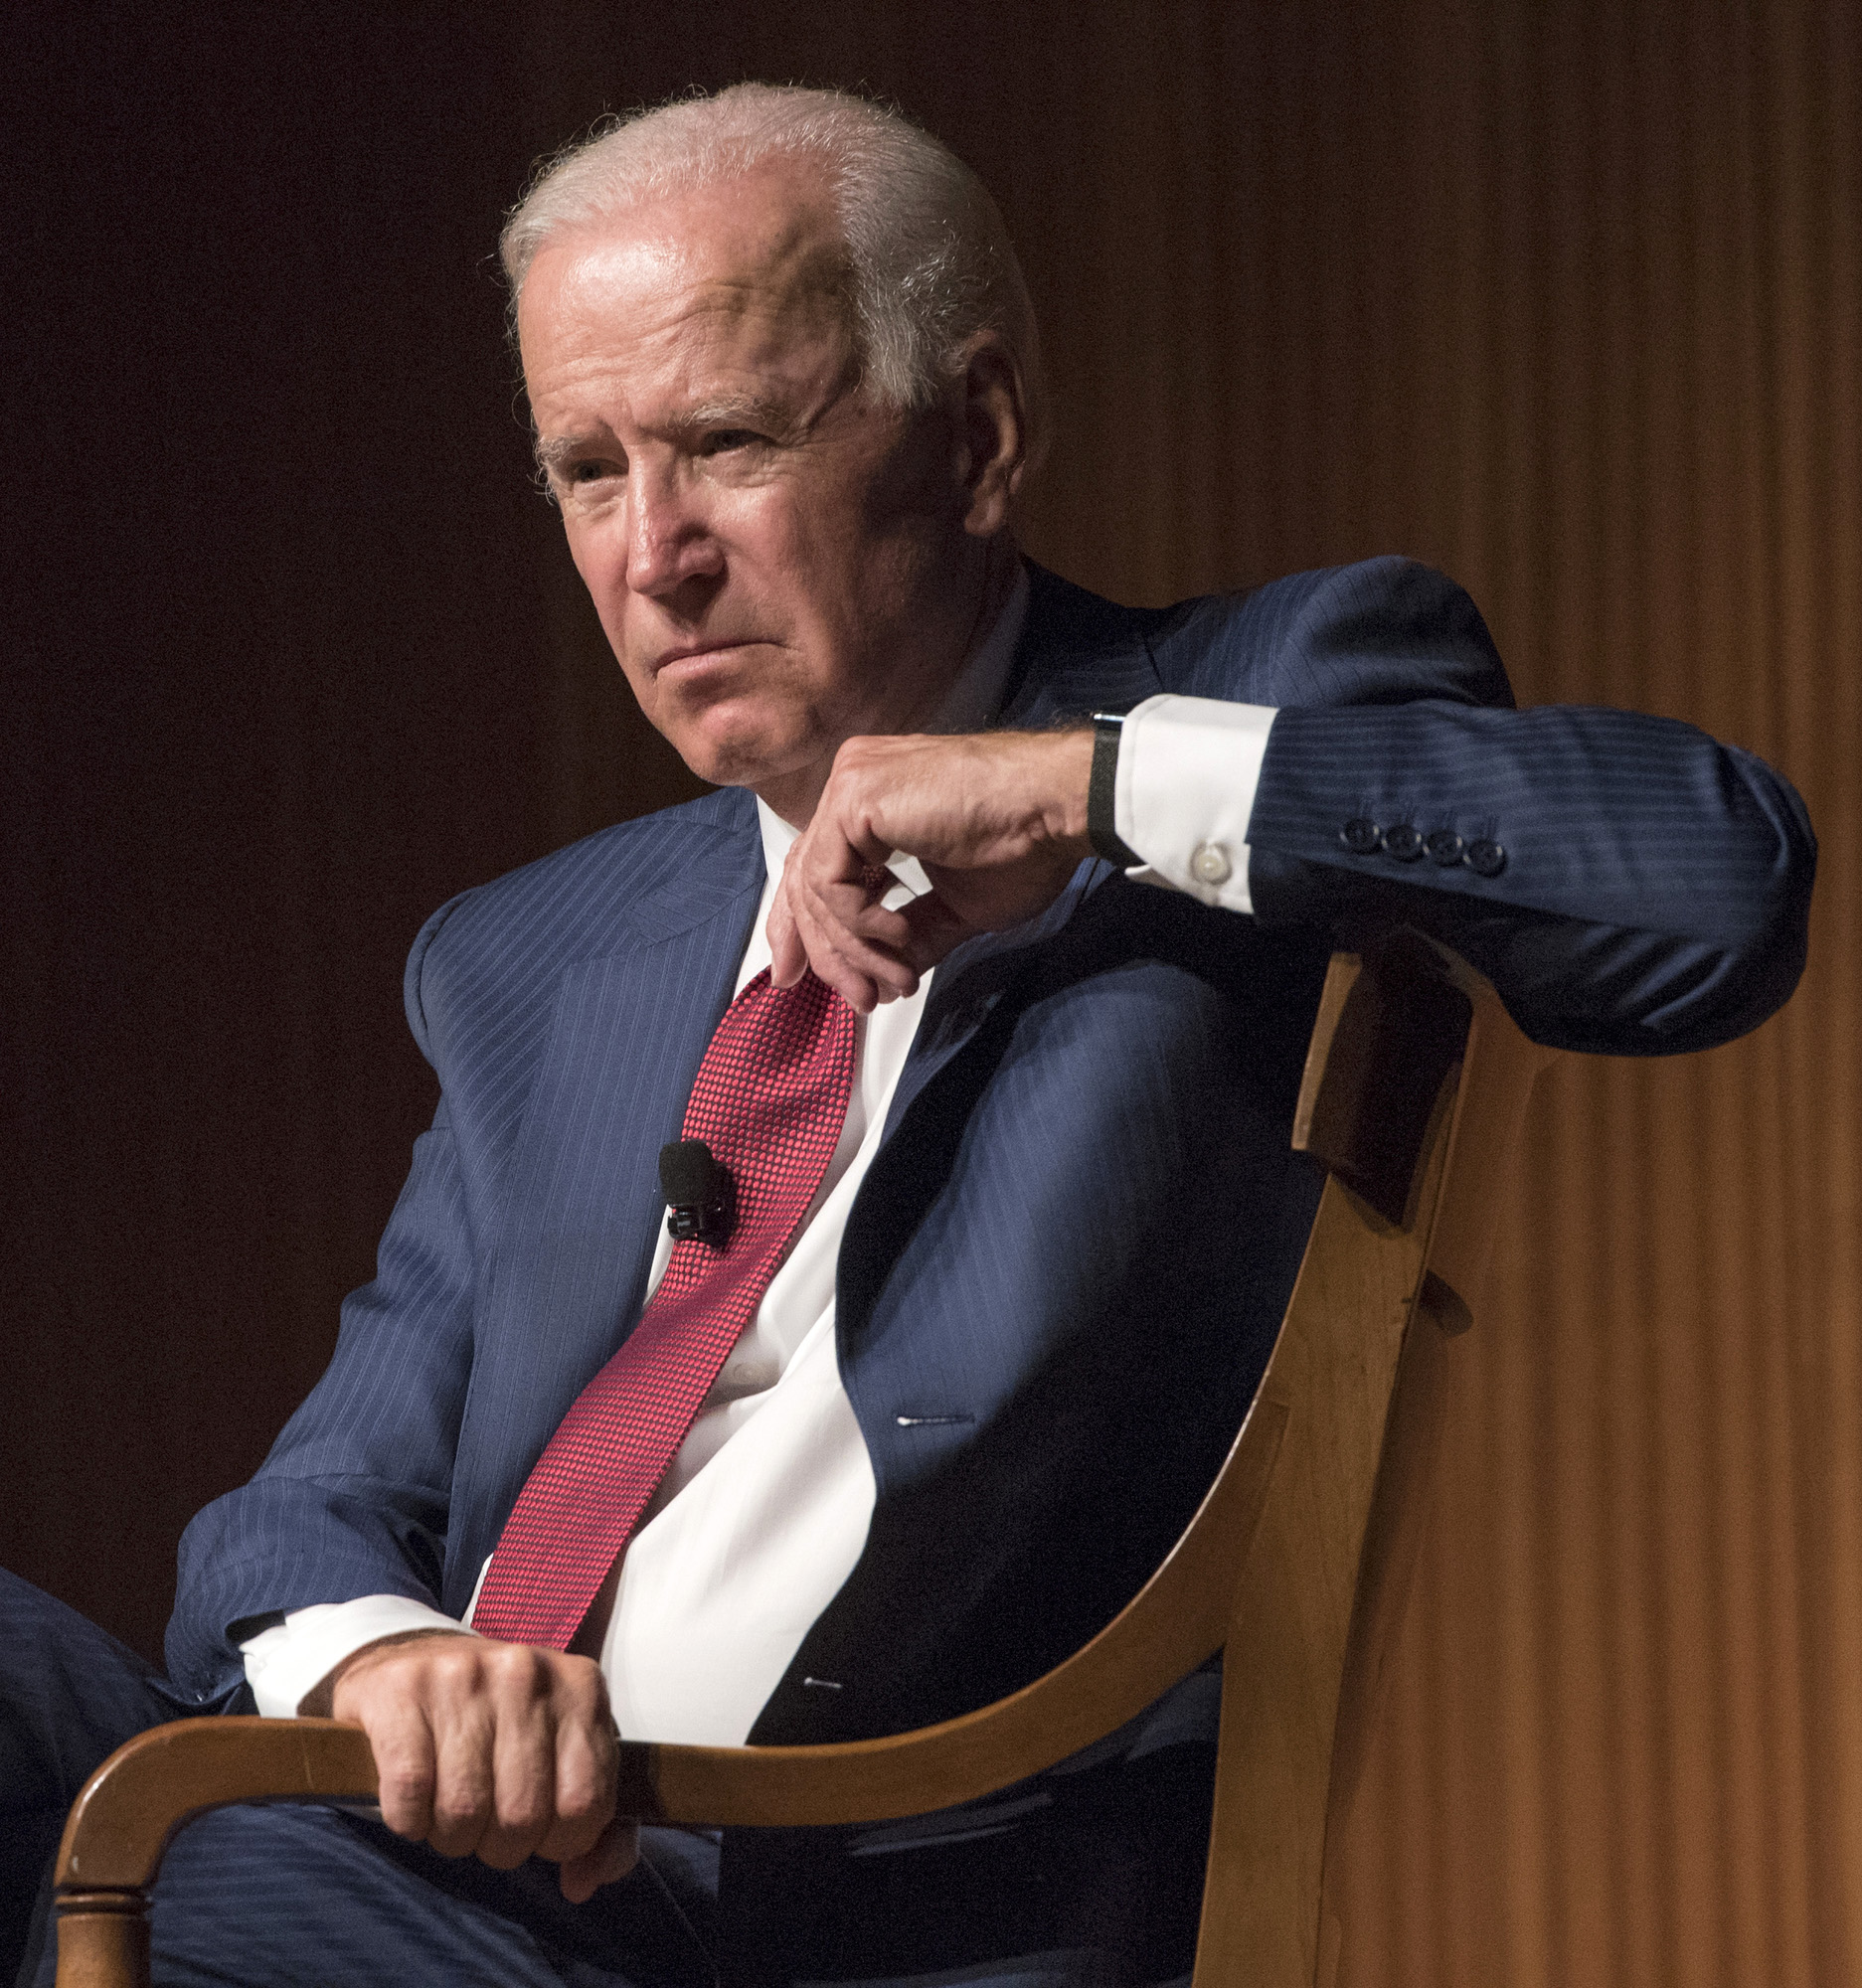 Biden Accusation Puts Hollywood Hypocrisy On Full Blast